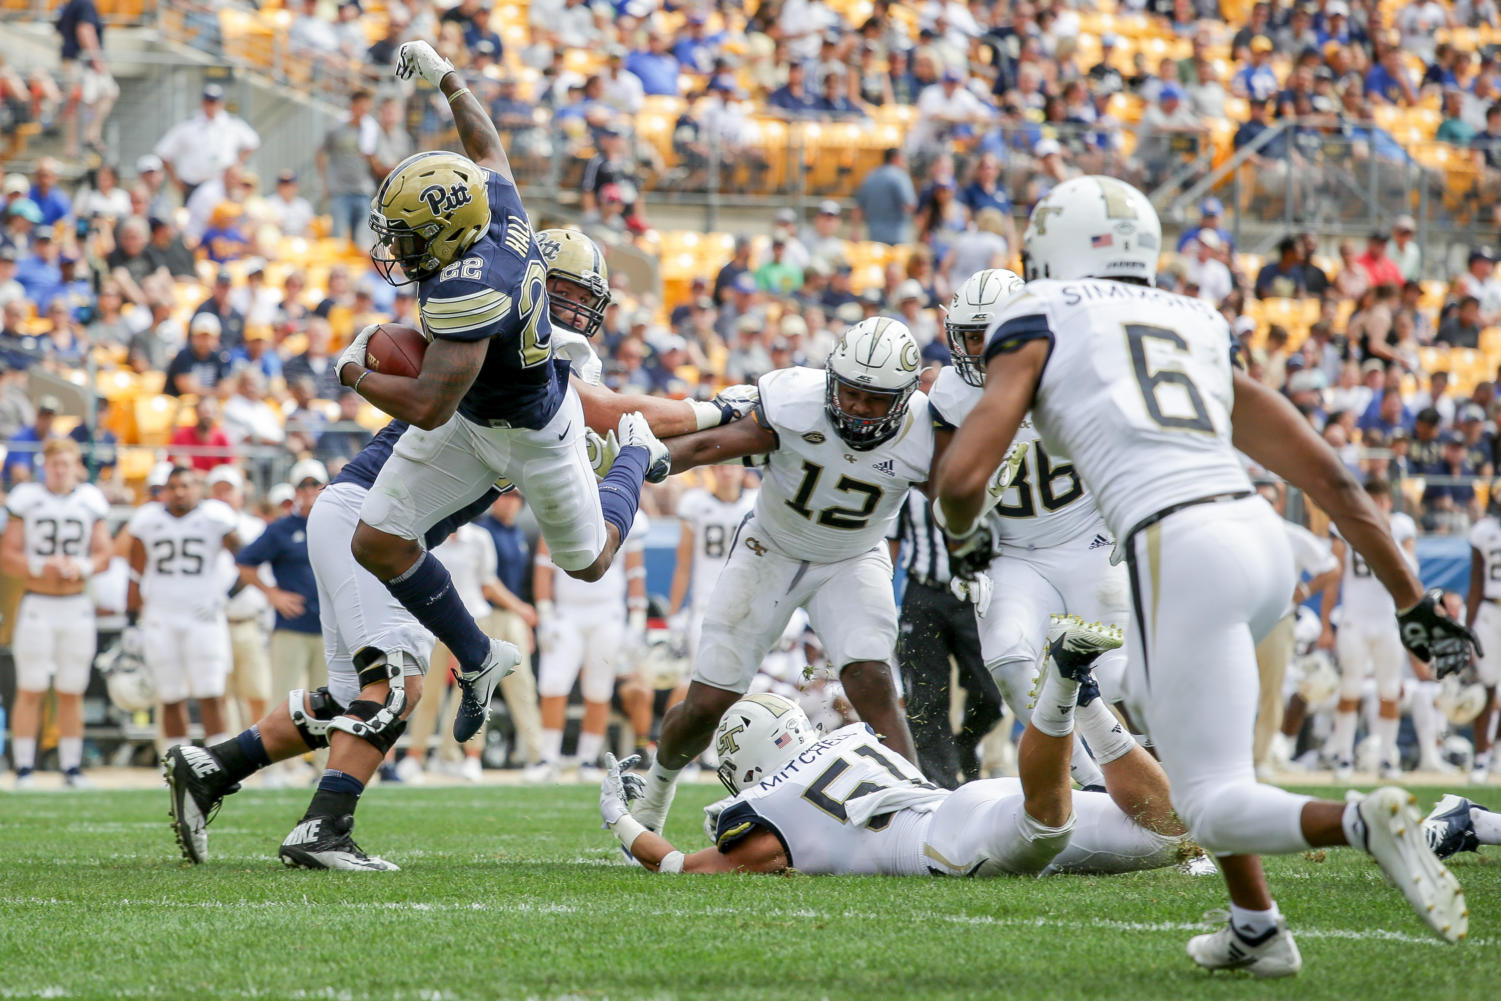 Senior running back Darrin Hall (22) leaps over Georgia Tech senior linebacker Brant Mitchell (51) while carrying the ball. The Panthers have lost two straight games since that win.